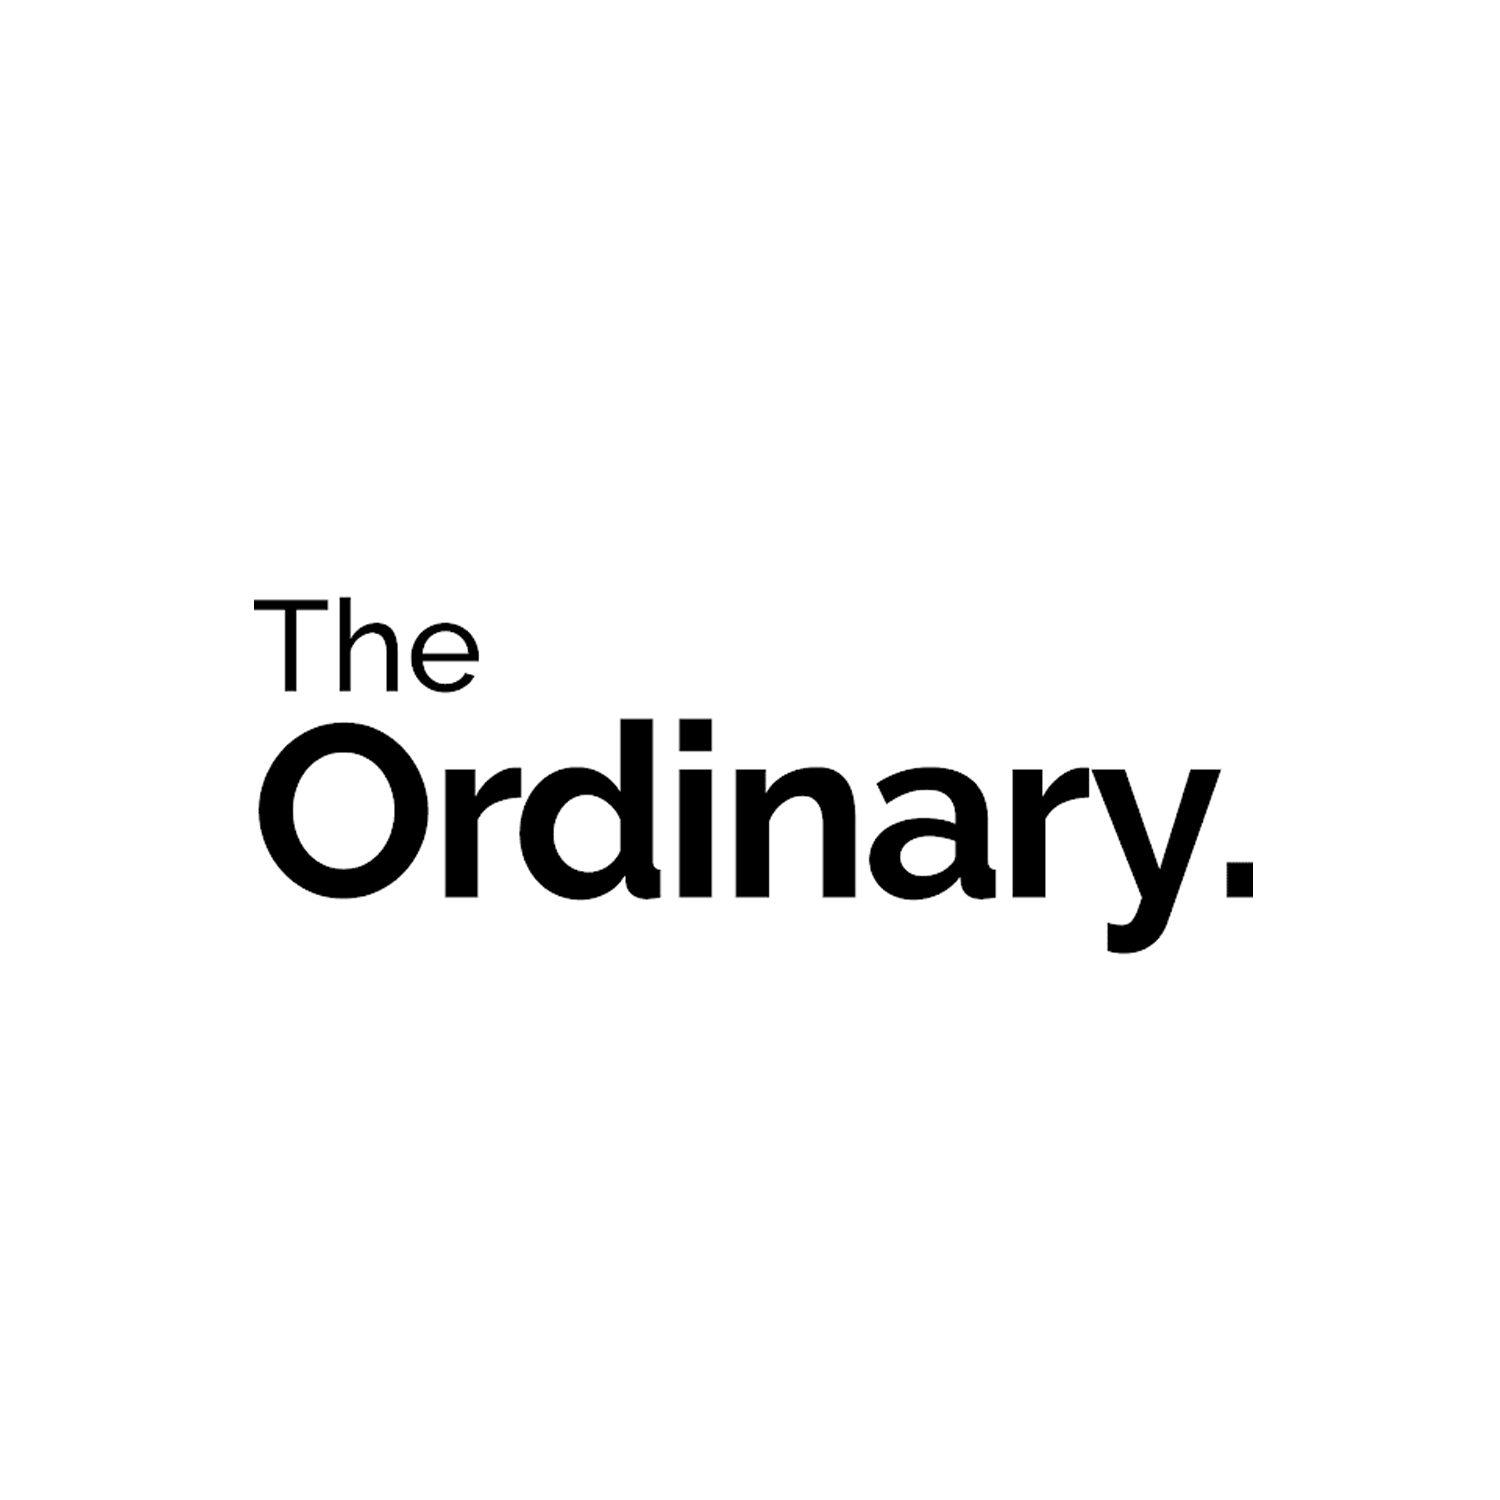 the_ordinary.png